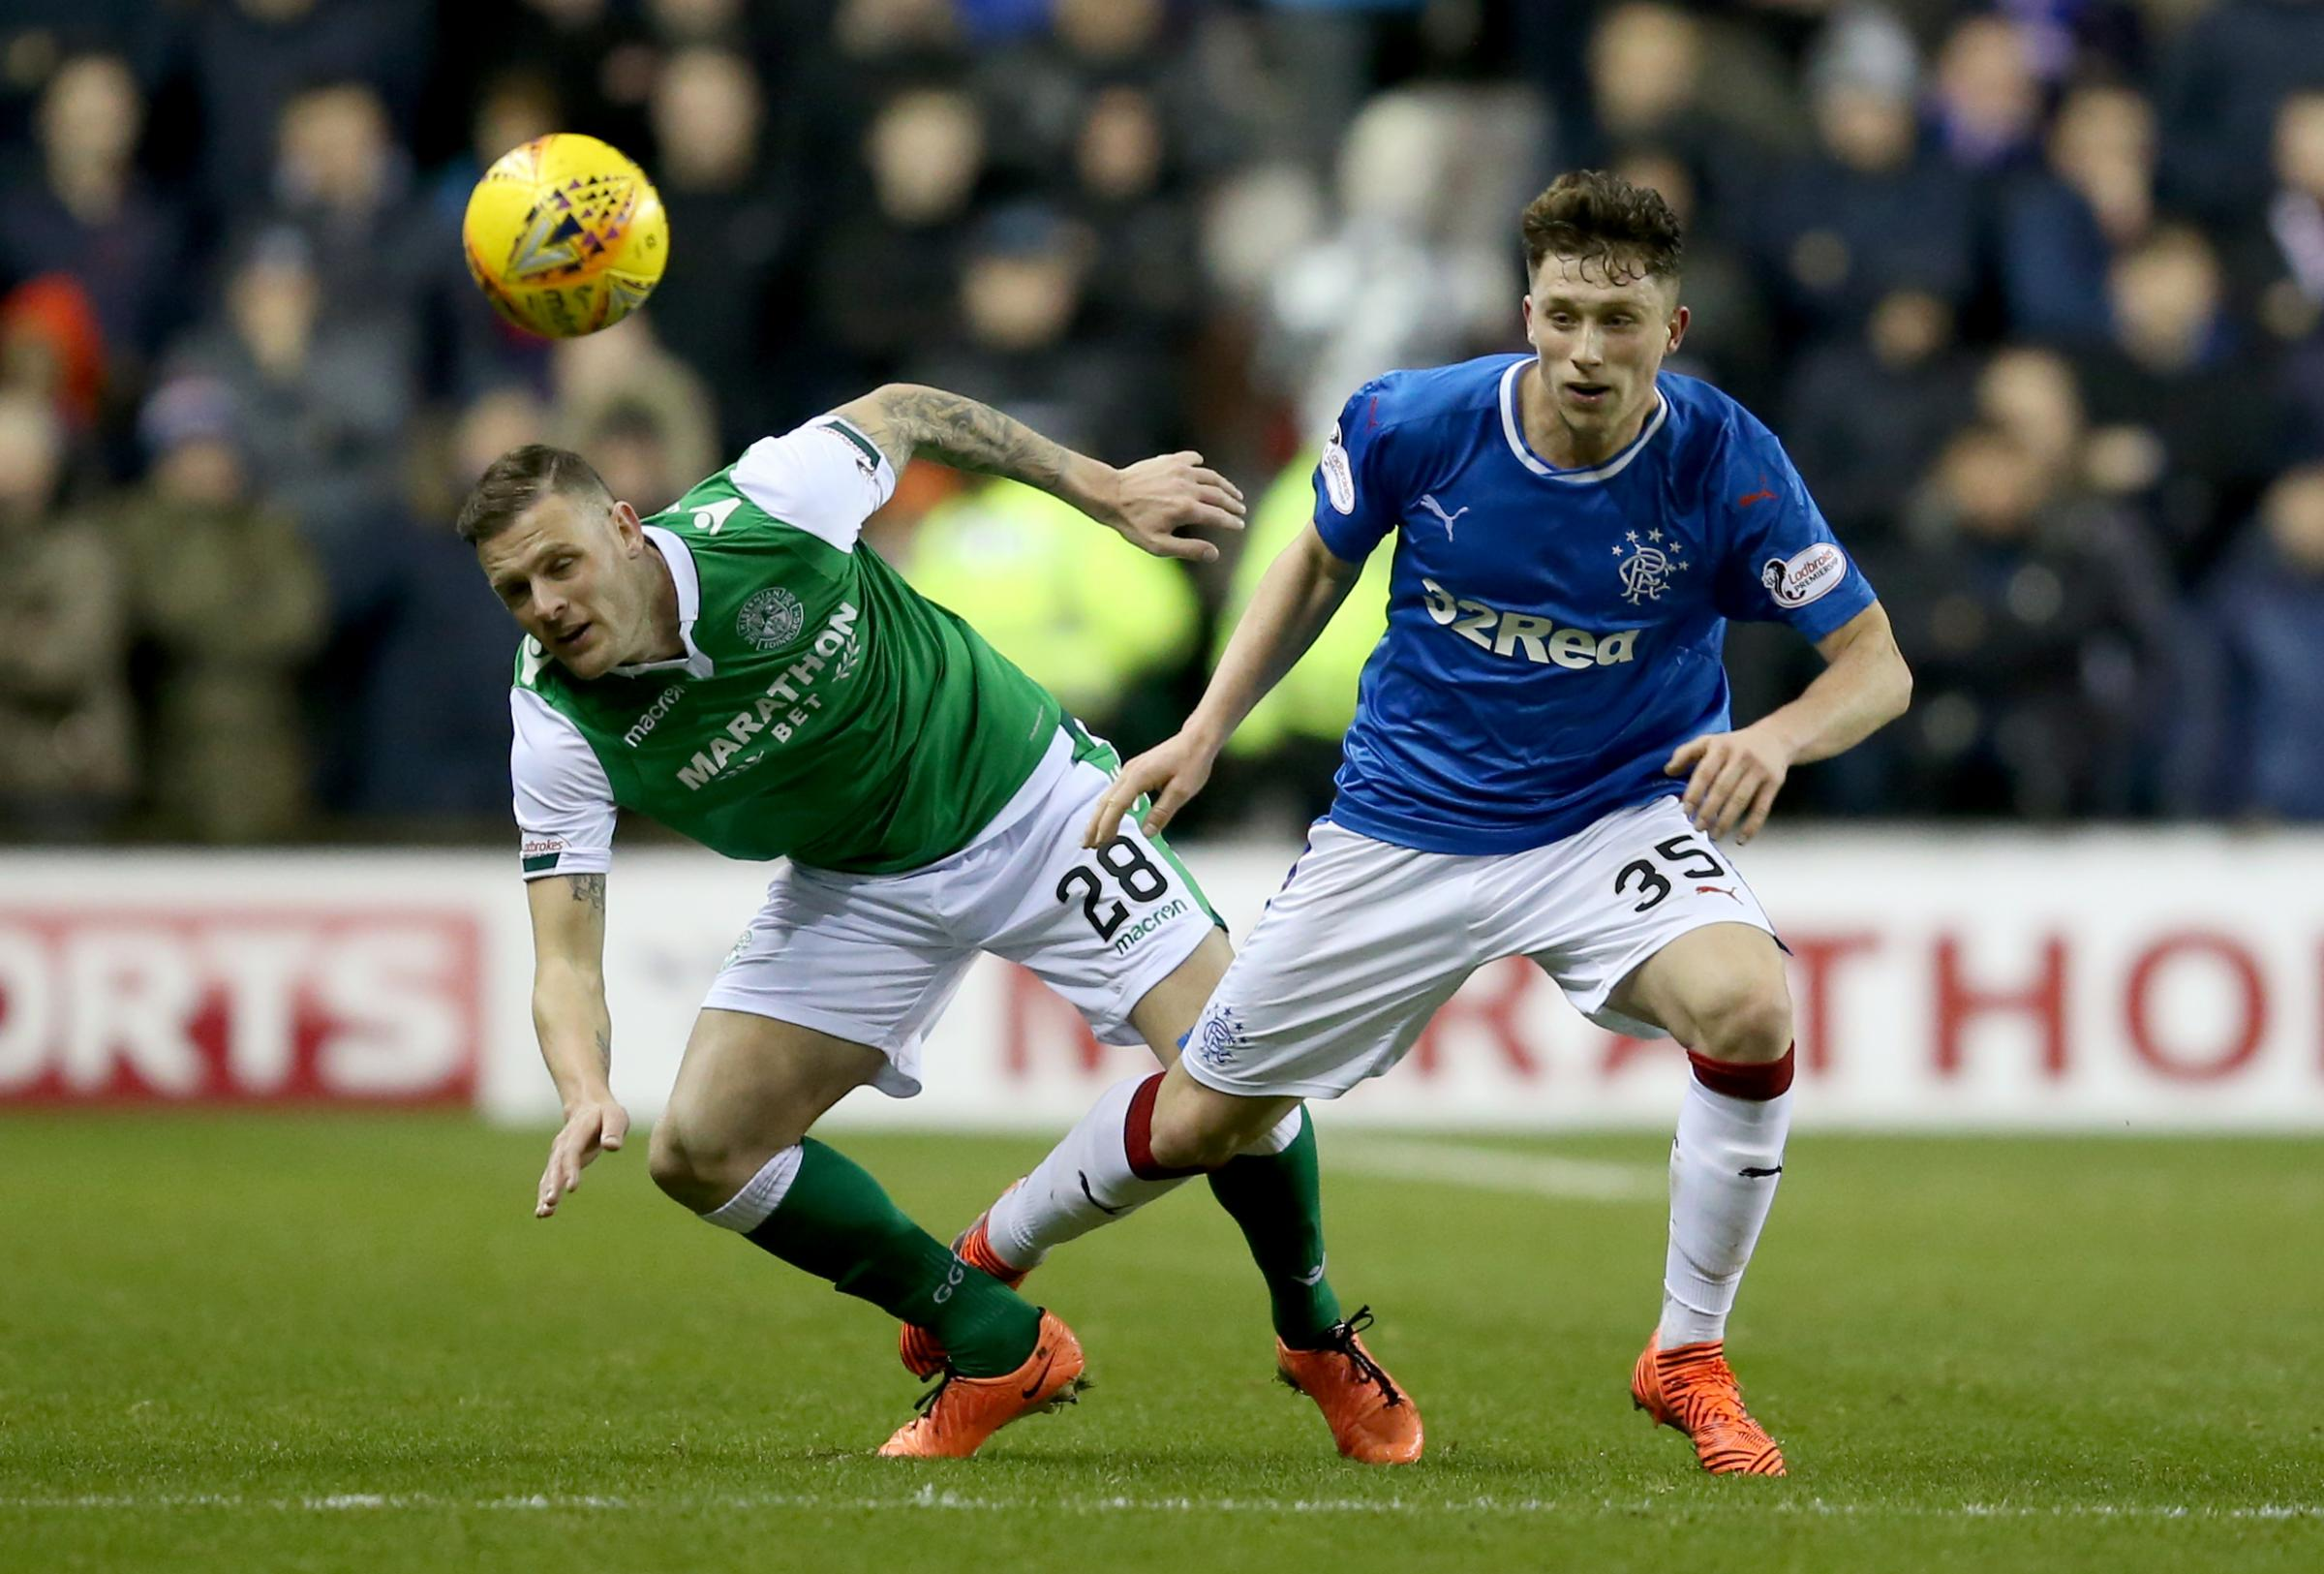 Rangers' Jamie Barjonas completes loan move to Partick Thistle